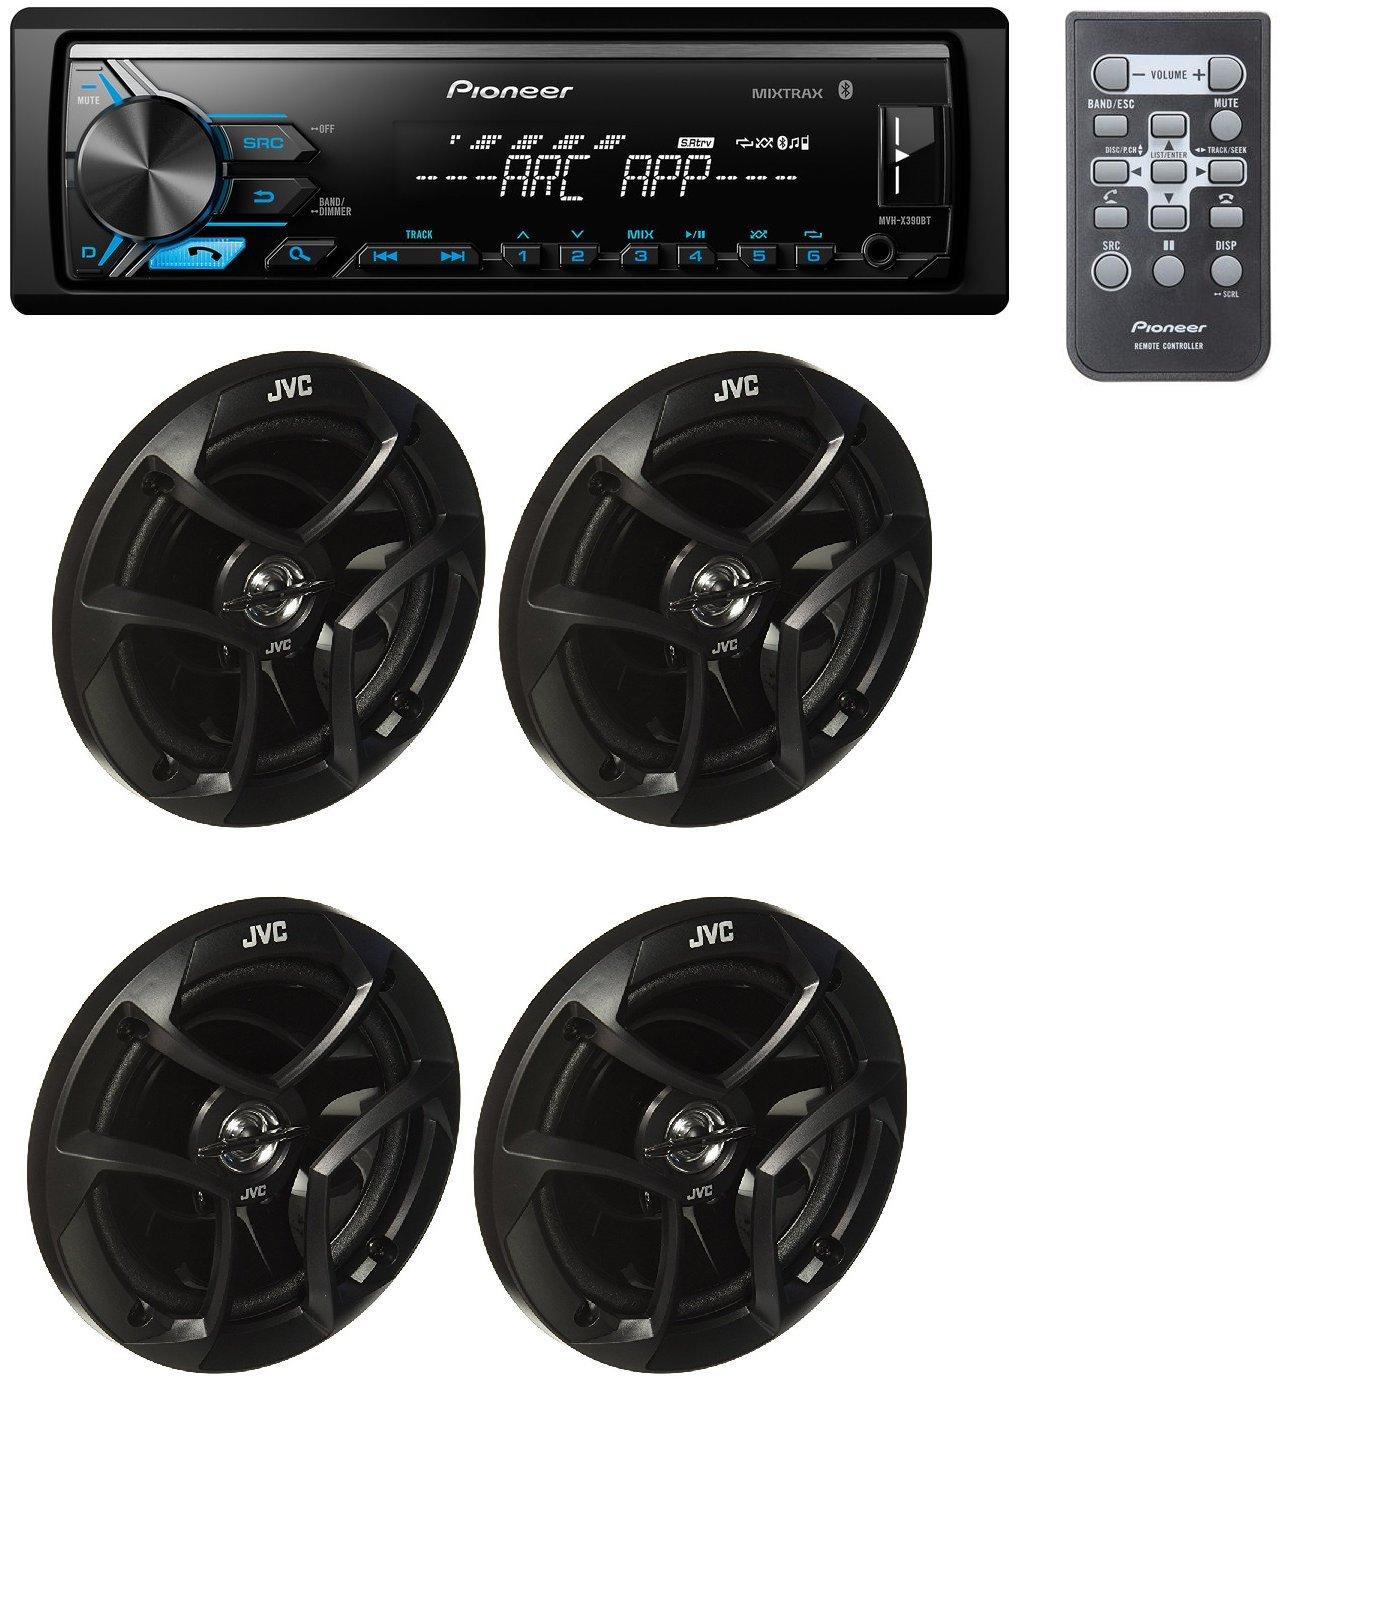 Pioneer MVH-X390BT MP3/WMA Digital Media Player Built-in Bluetooth MIXTRAX With (2) Pairs Of CS-J620 6.5'' 300W Car Audio 2-WAY Coaxial Car Speakers System / 4 Speakers